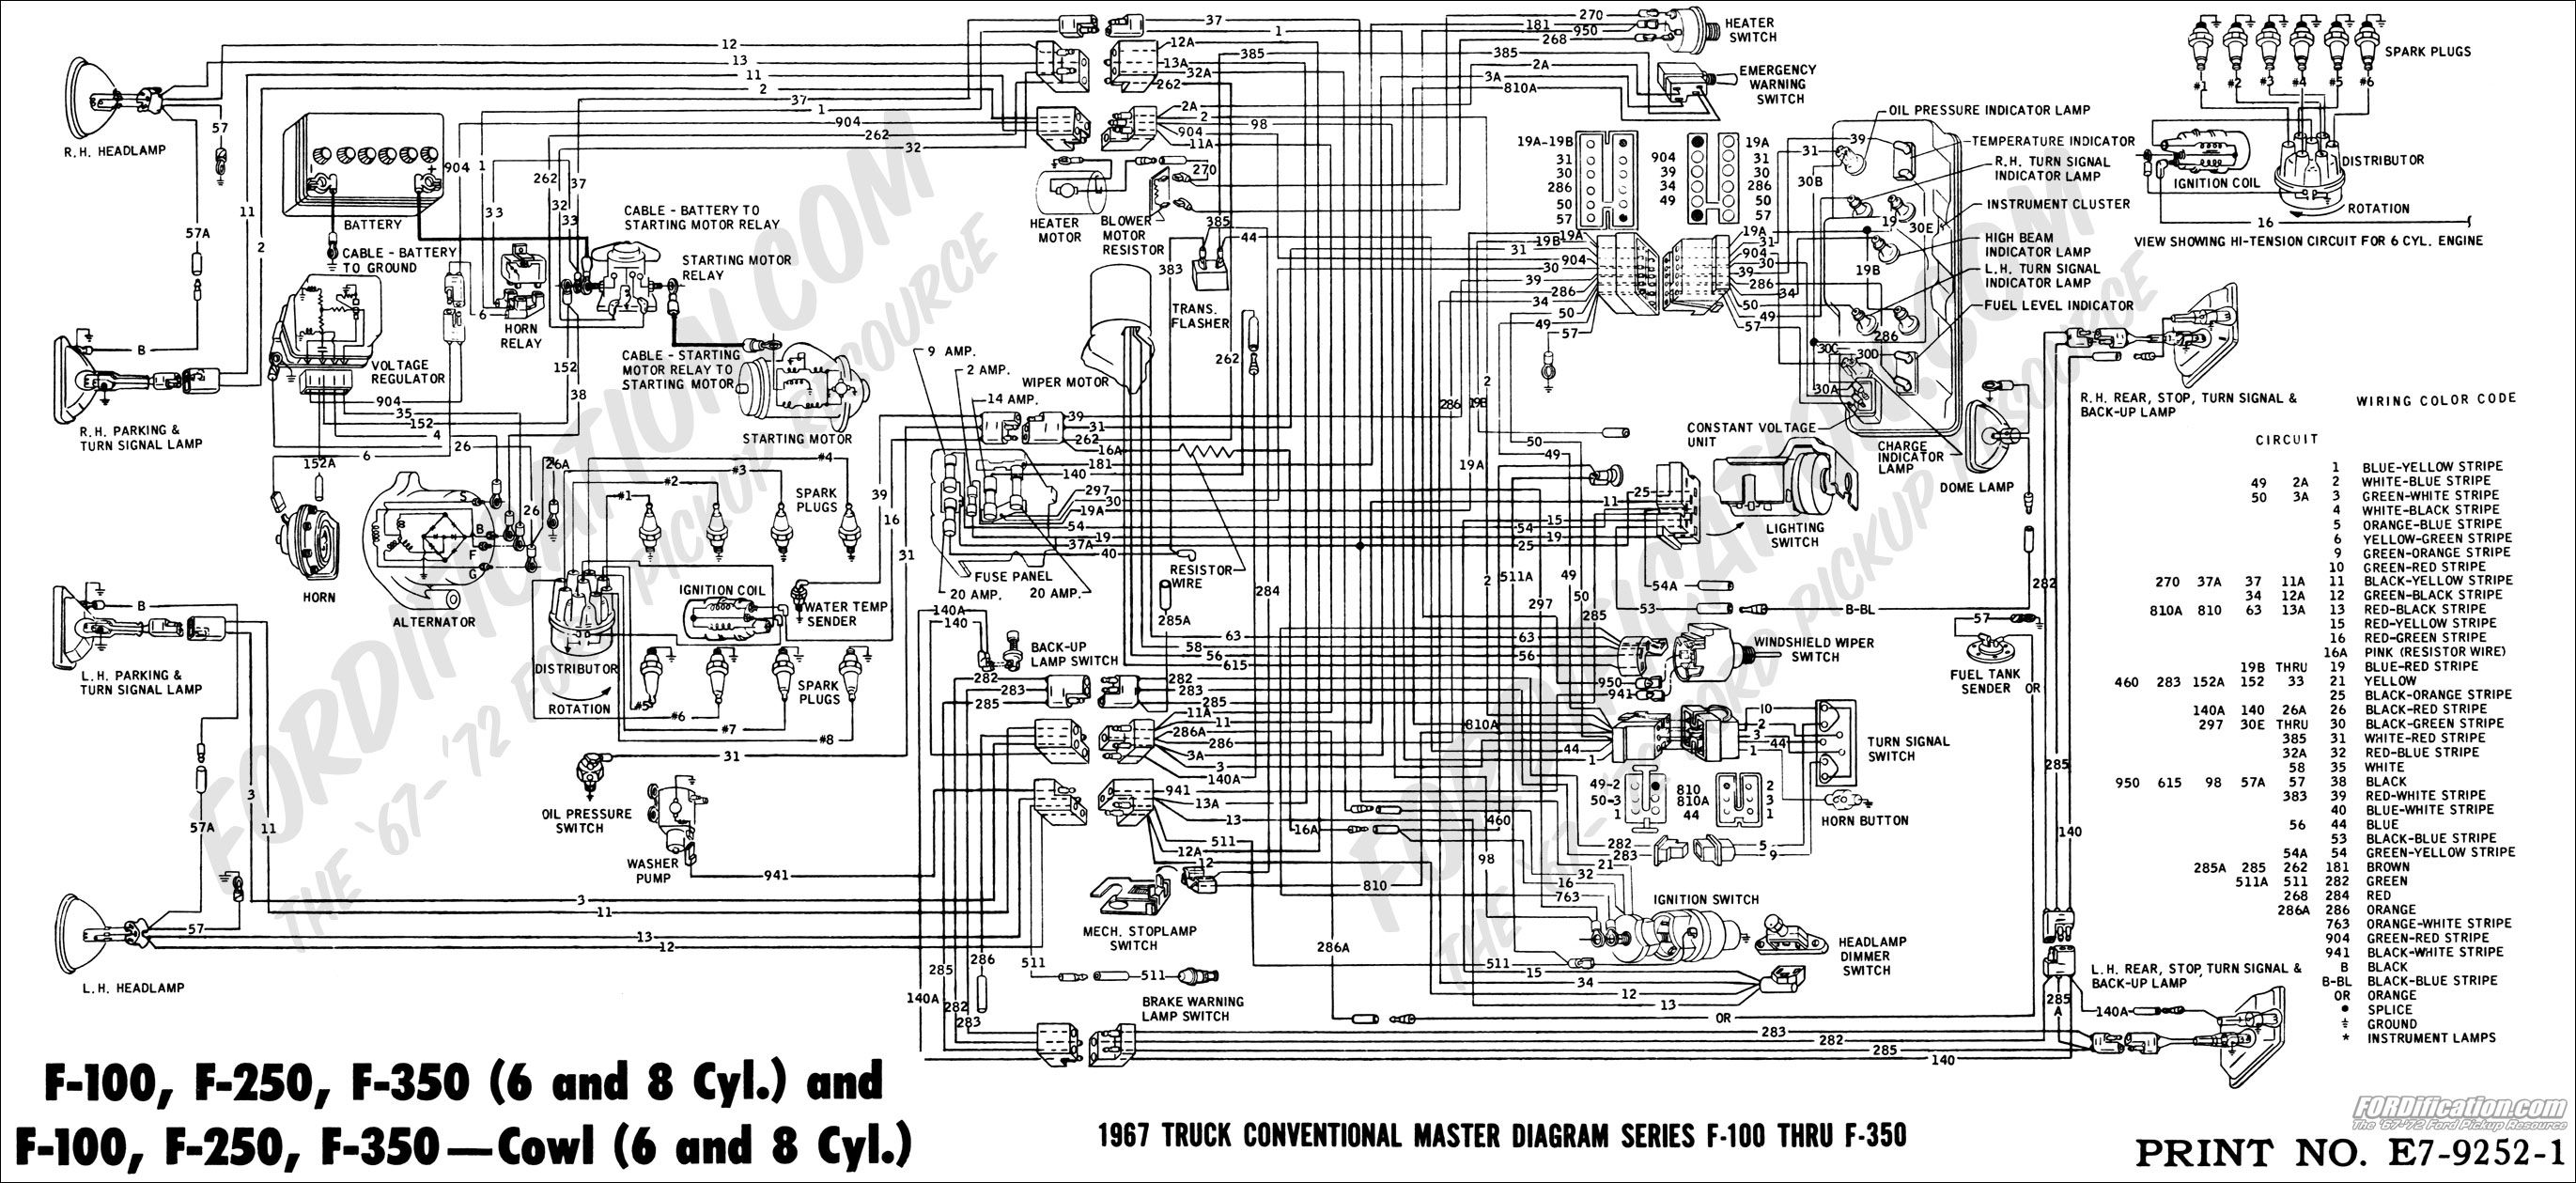 ford truck wiring diagram 1952 ford f1 wiring diagram 1952 image wiring diagram ford truck technical drawings and schematics section